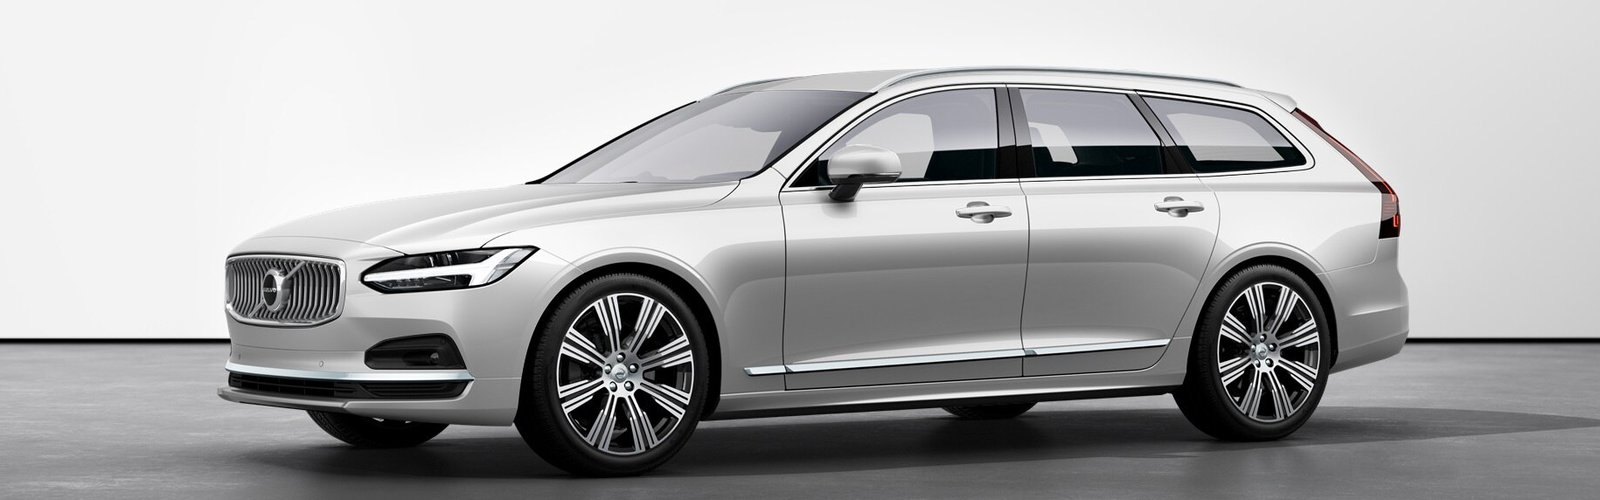 2020 Volvo V90 Specification Price and Review